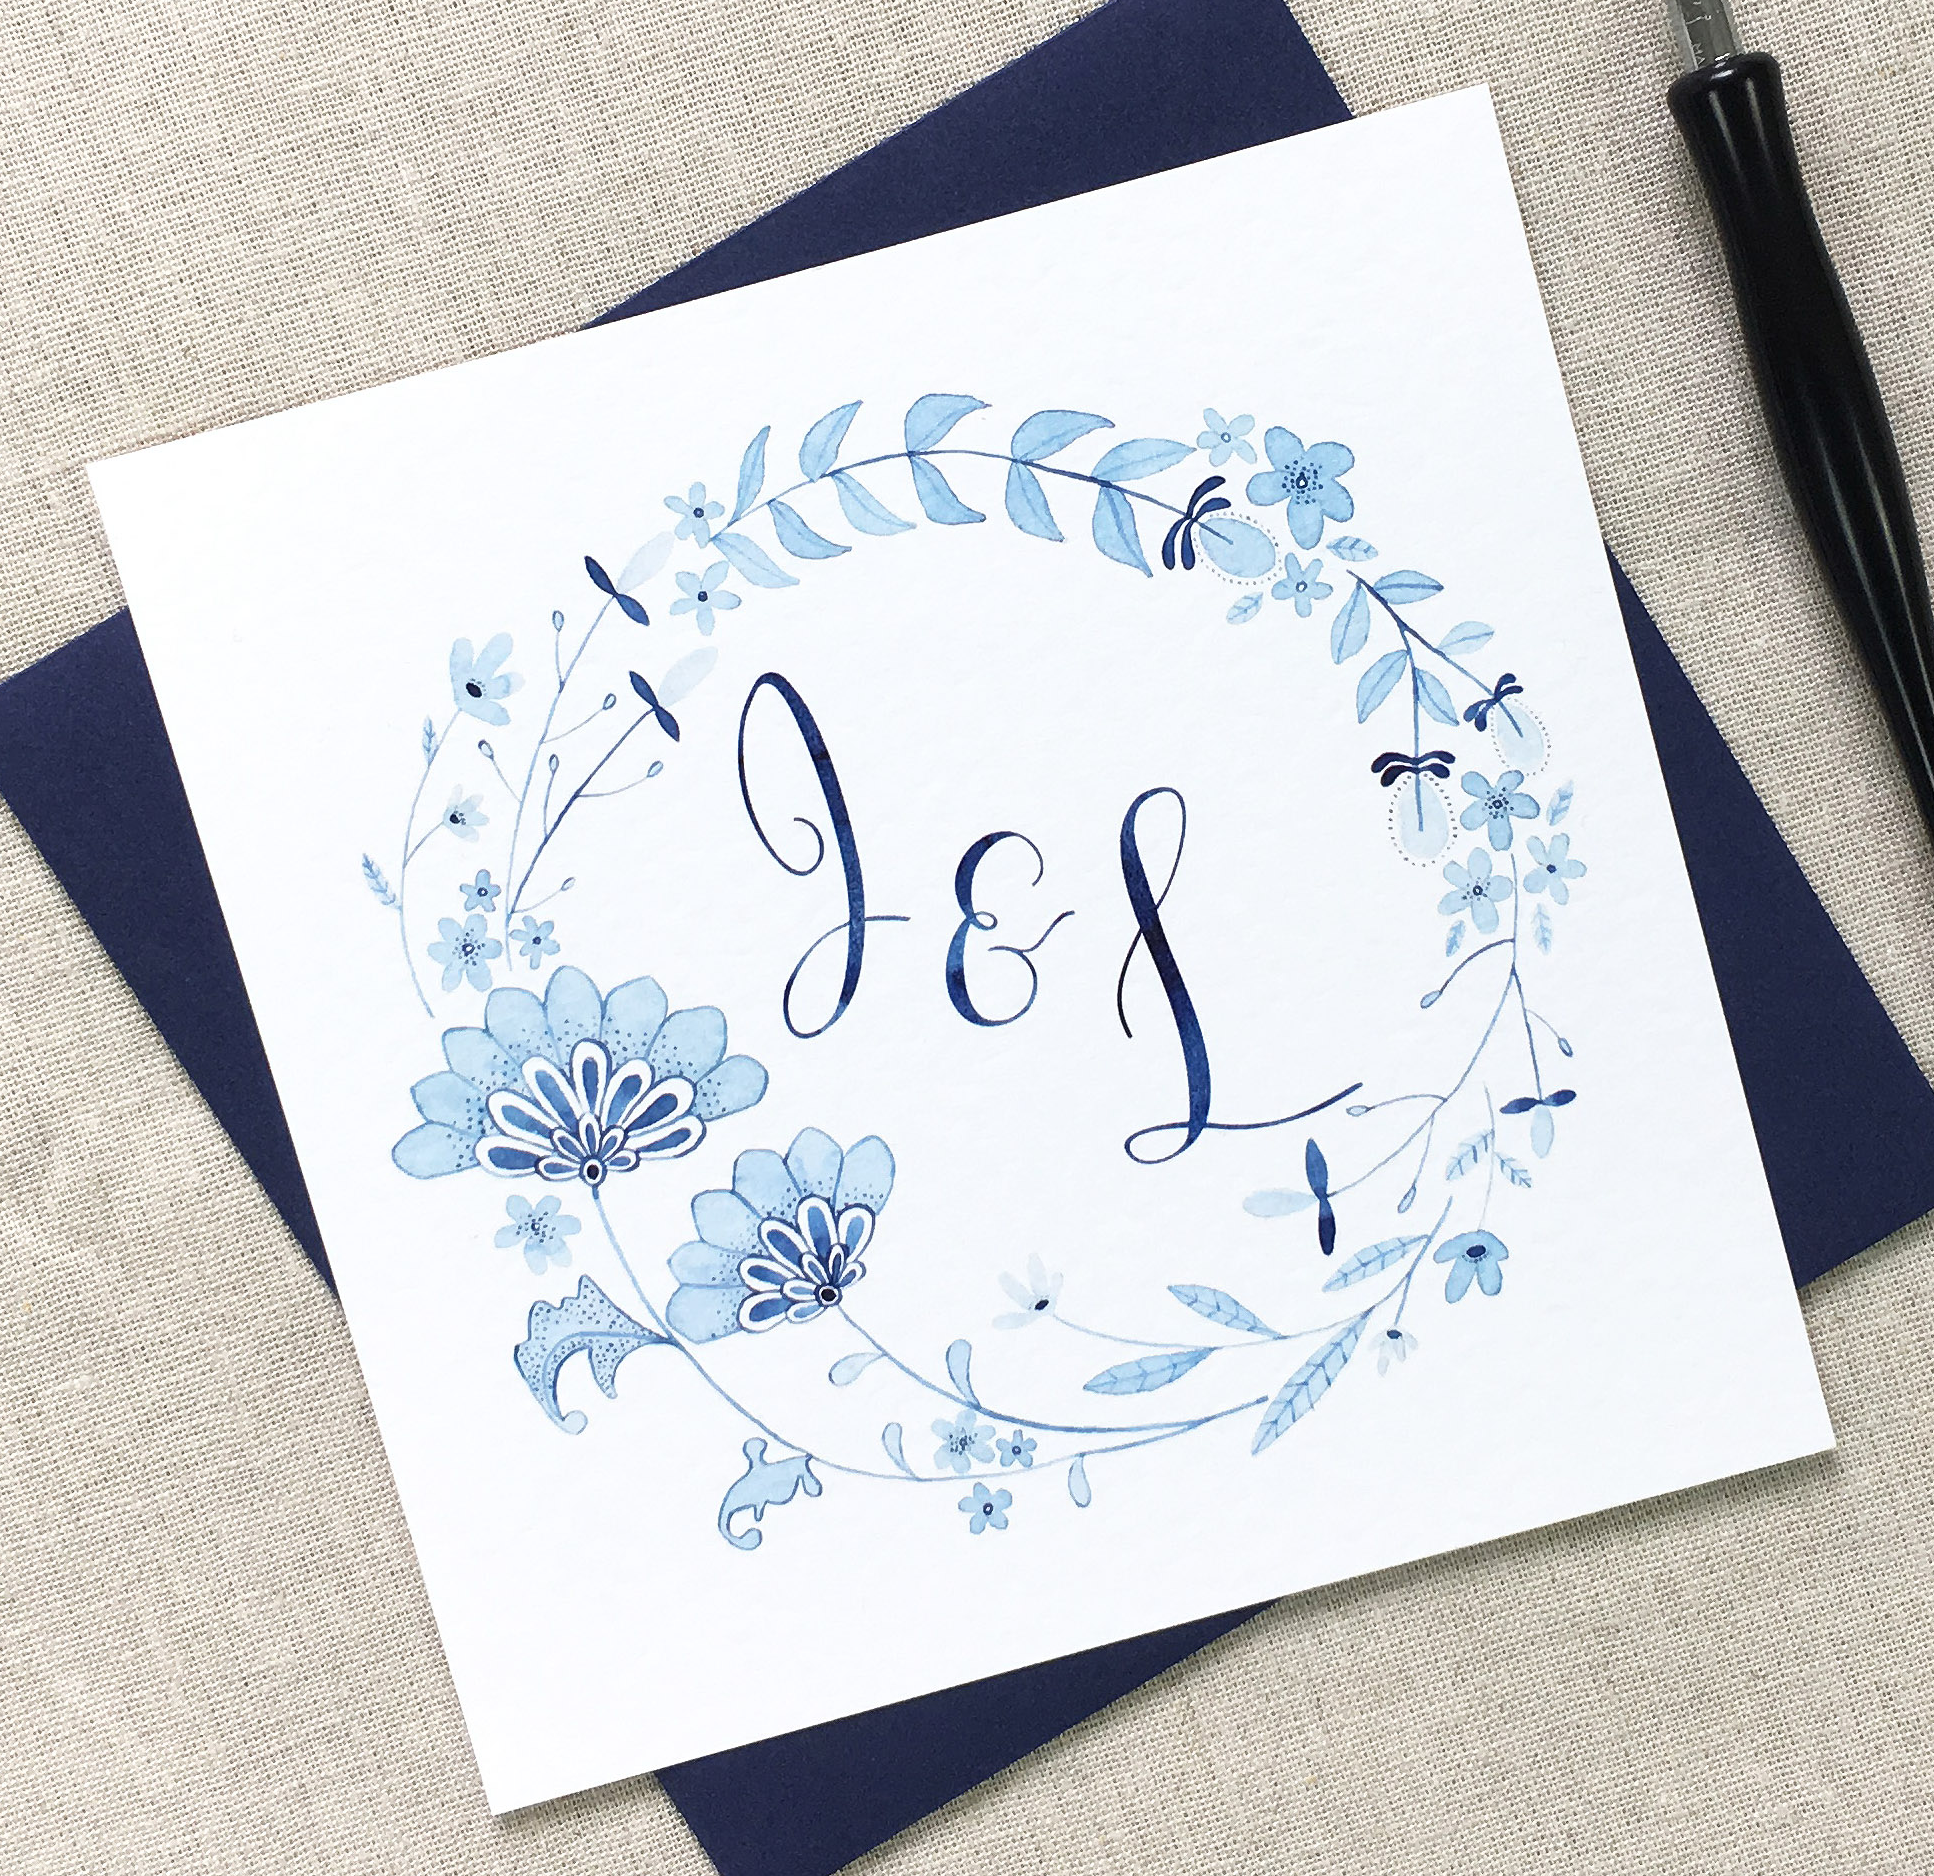 CELESTE    The Celeste range is an elegant, Mediterranean-inspired collection, created using beautiful tones of blue watercolour, adding a fresh and pretty touch to your wedding.